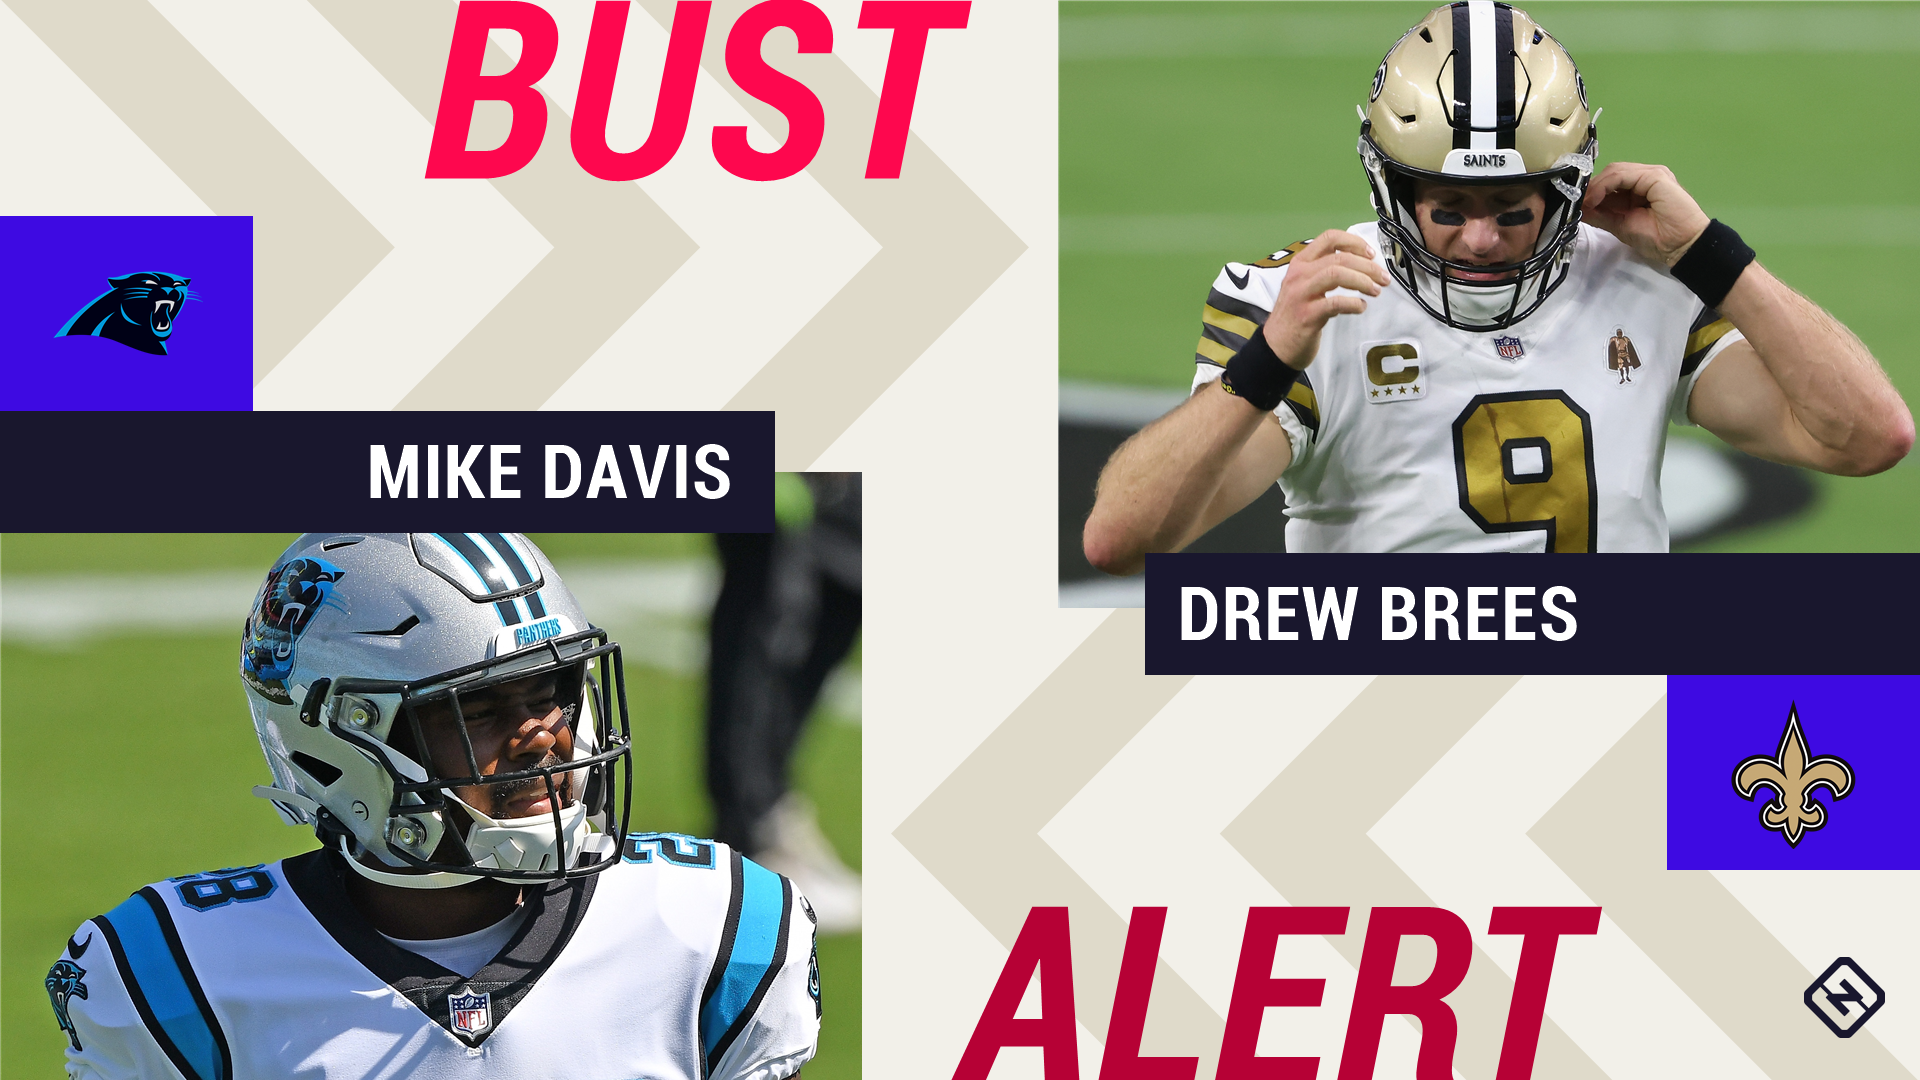 Week 3 Fantasy Busts: Mike Davis, Drew Brees among risky starts in tough matchups - sporting news